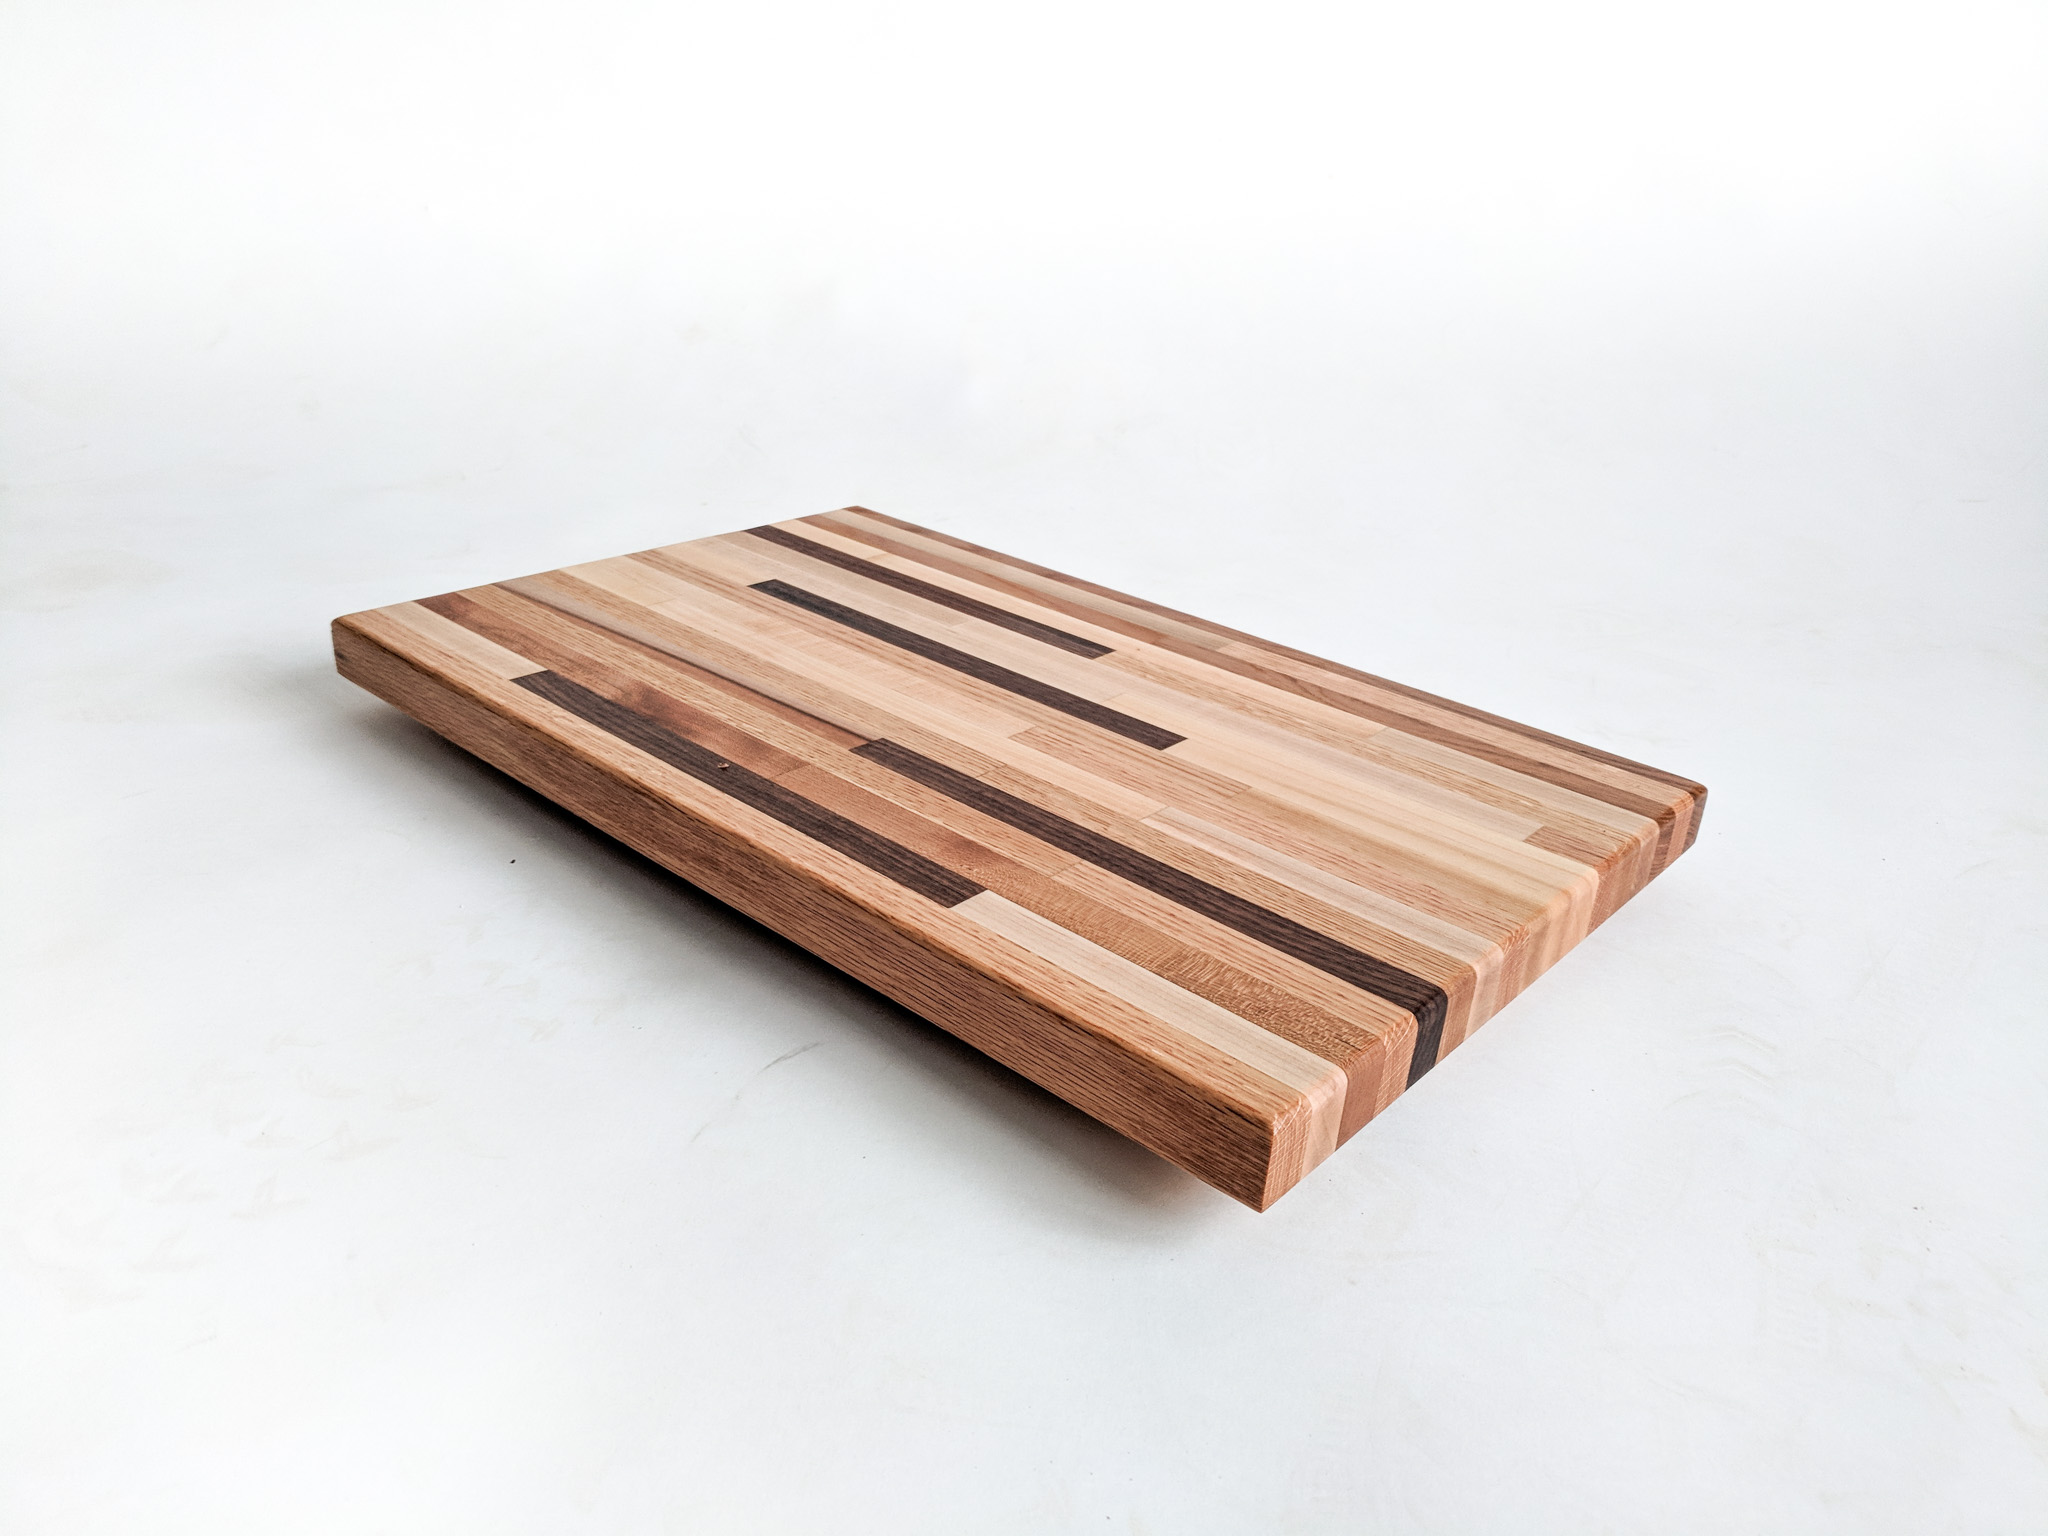 CuttingBoards-071418-9.jpg